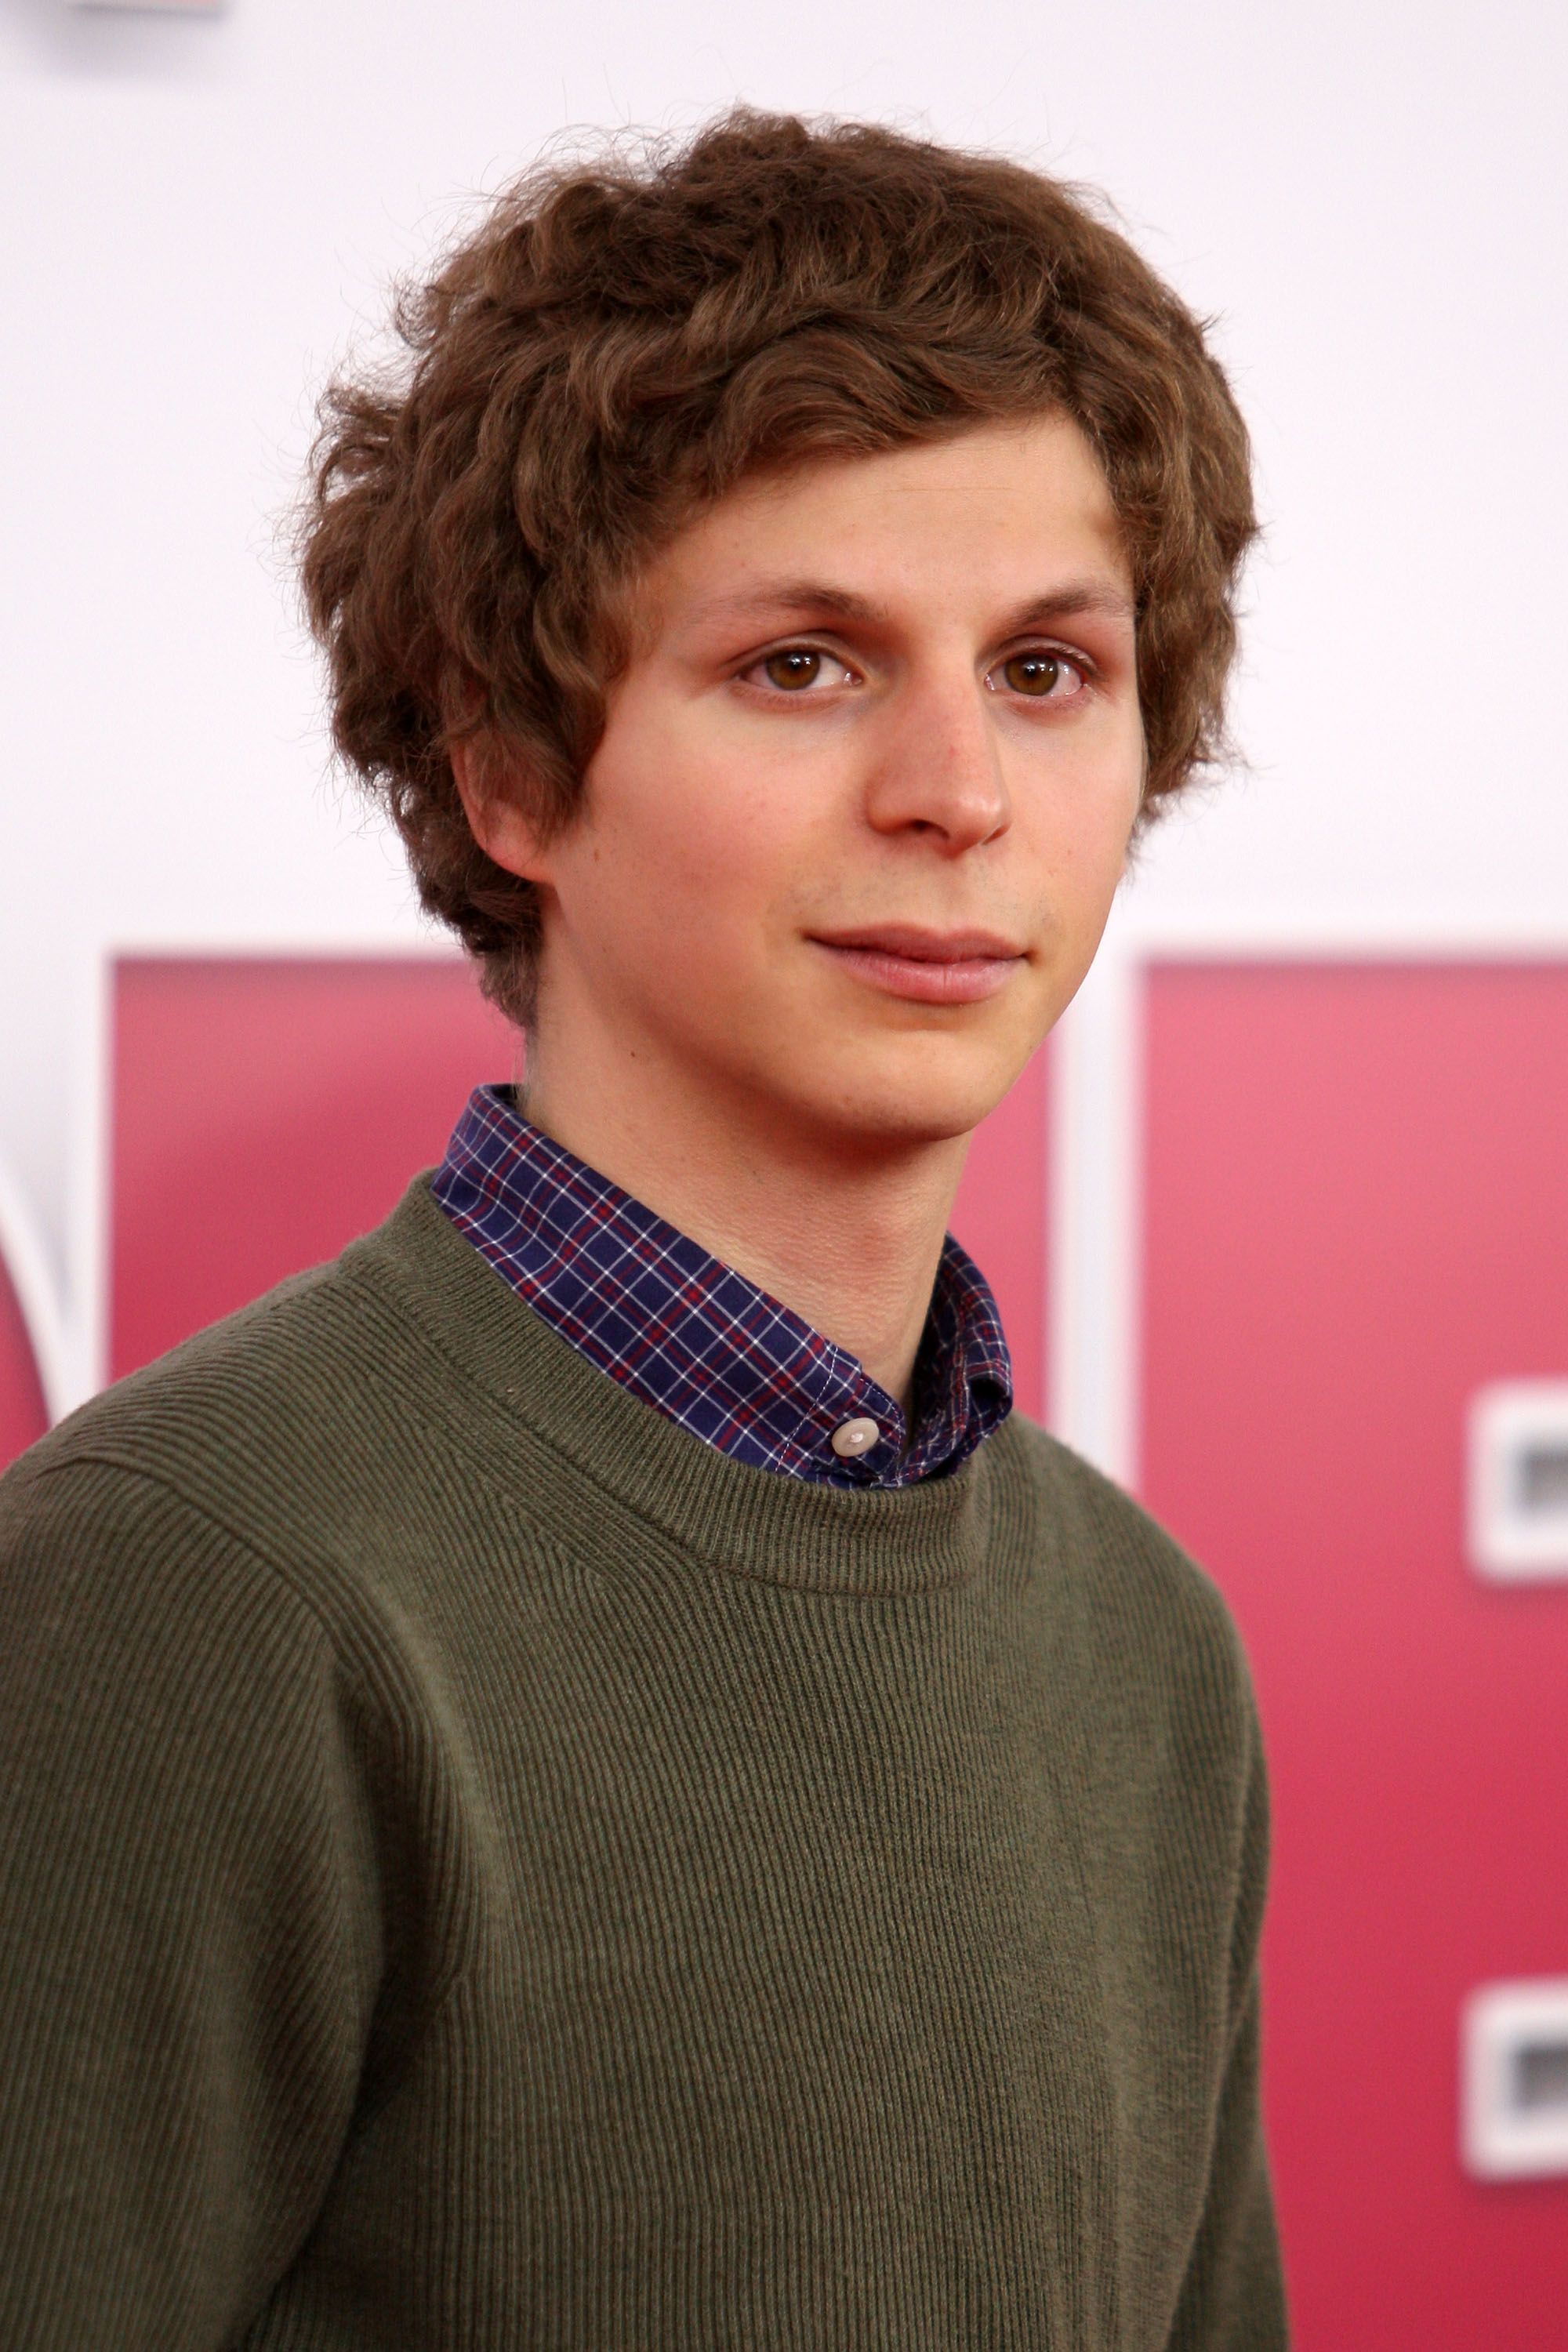 michael cera filmographymichael cera 2016, michael cera twin peaks, michael cera witcher 3, michael cera twitter, michael cera nadine, michael cera movies, michael cera tumblr, michael cera bumpy road, michael cera band, michael cera - true that, michael cera best movies, michael cera vk, michael cera between two ferns, michael cera insta, michael cera filmography, michael cera reddit, michael cera gif, michael cera music, michael cera imdb, michael cera album